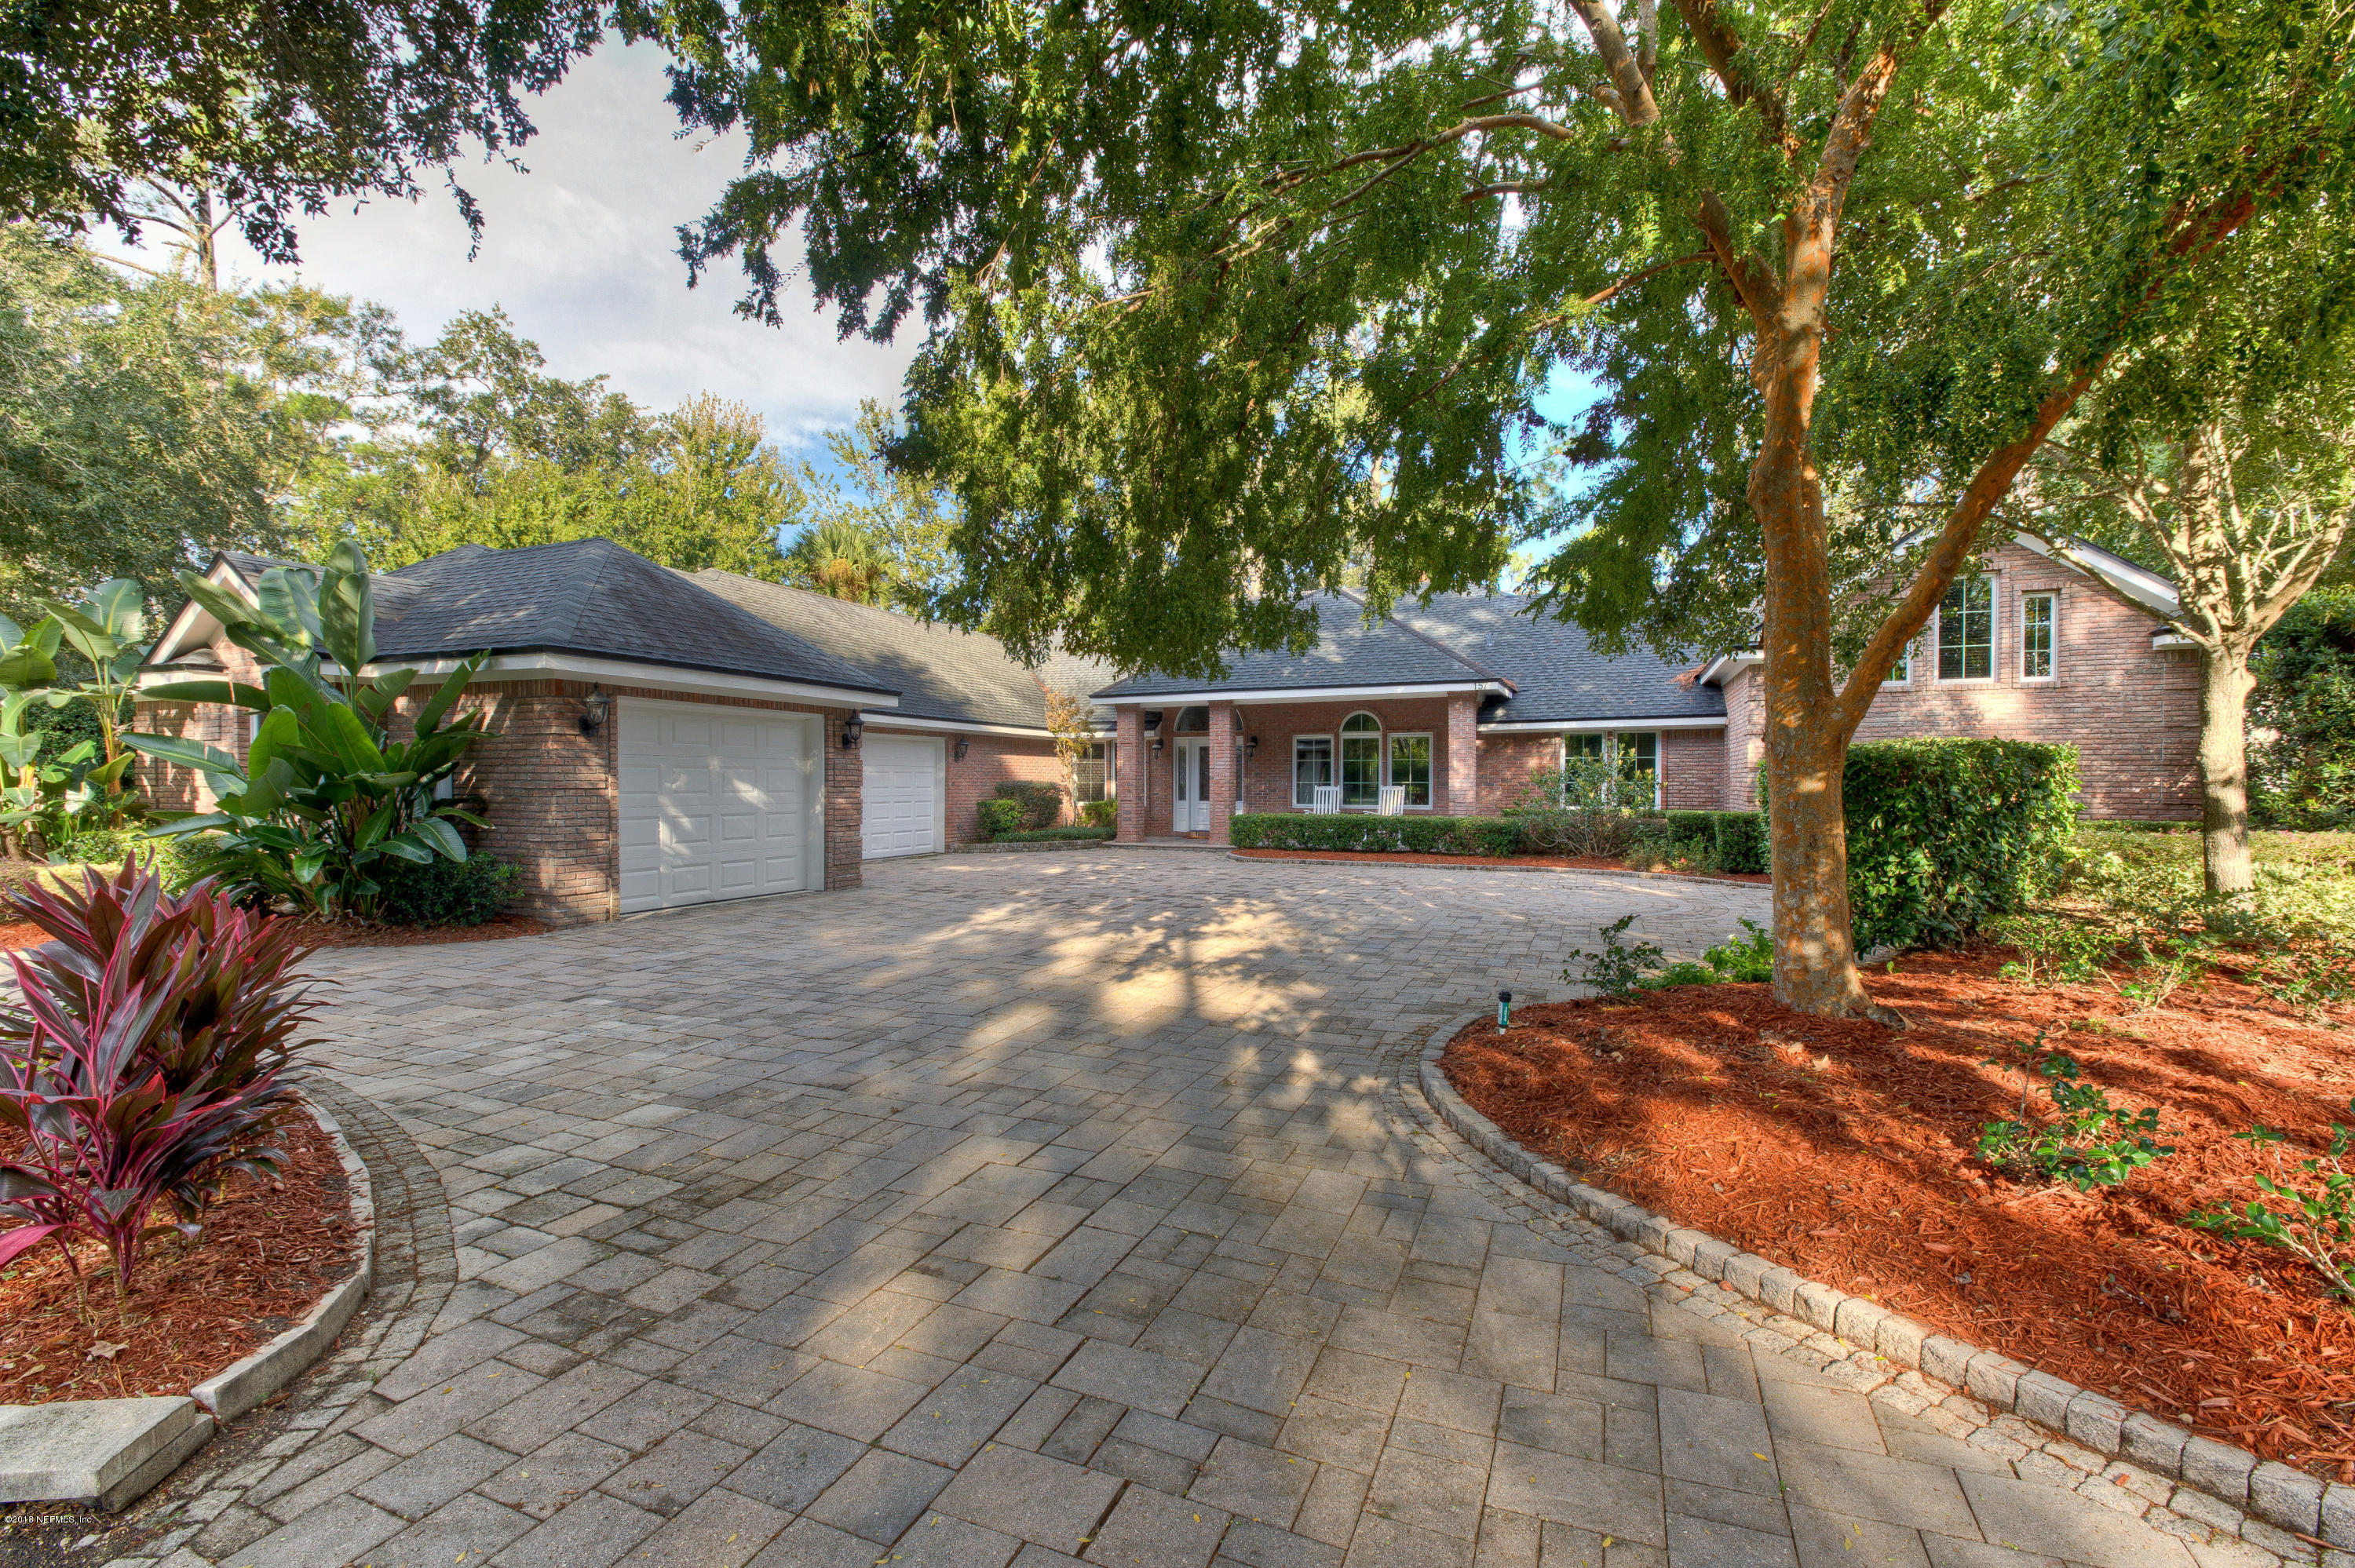 157 GREENCREST, PONTE VEDRA BEACH, FLORIDA 32082, 4 Bedrooms Bedrooms, ,3 BathroomsBathrooms,Residential - single family,For sale,GREENCREST,965678